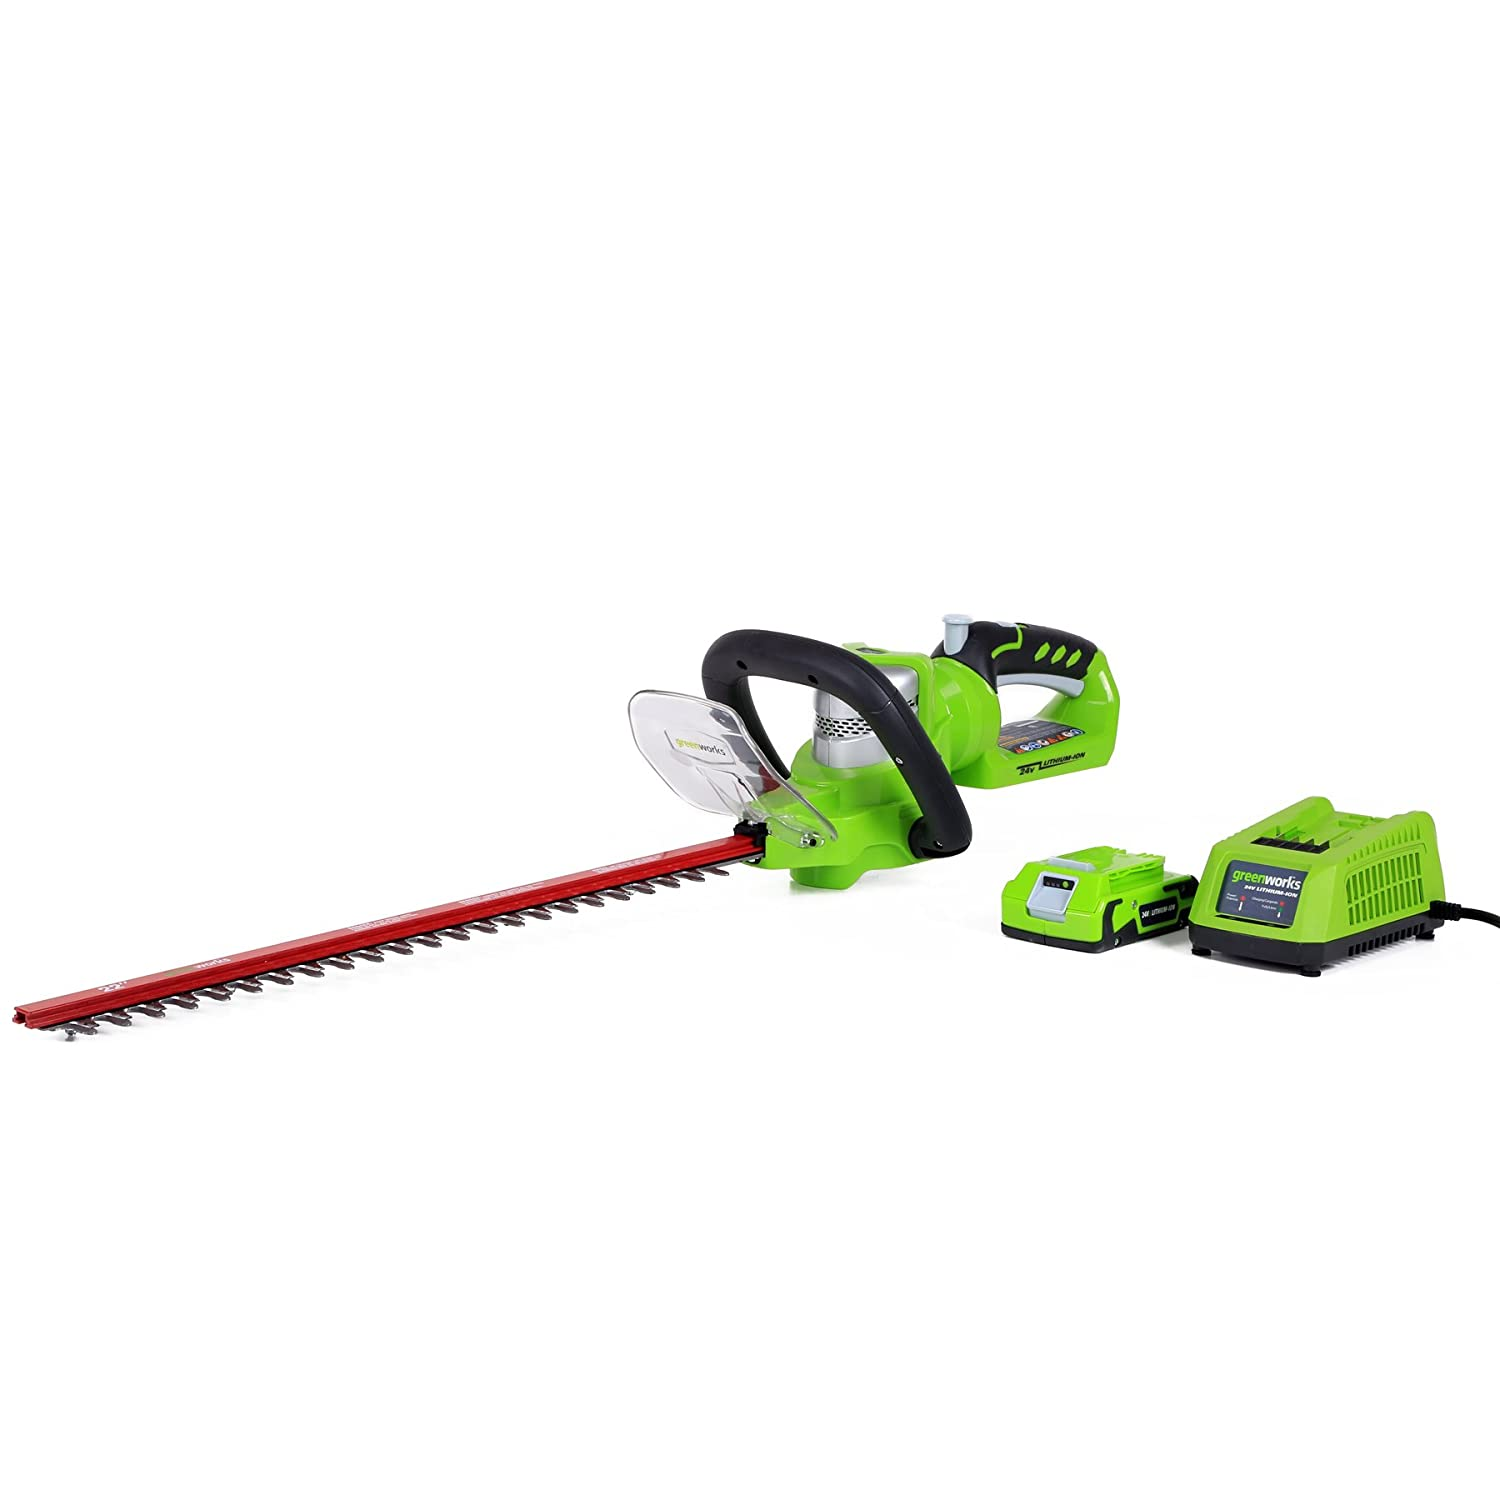 Greenworks 22-Inch 24V Cordless Hedge Trimmer, 2.0 AH Battery Included 22232